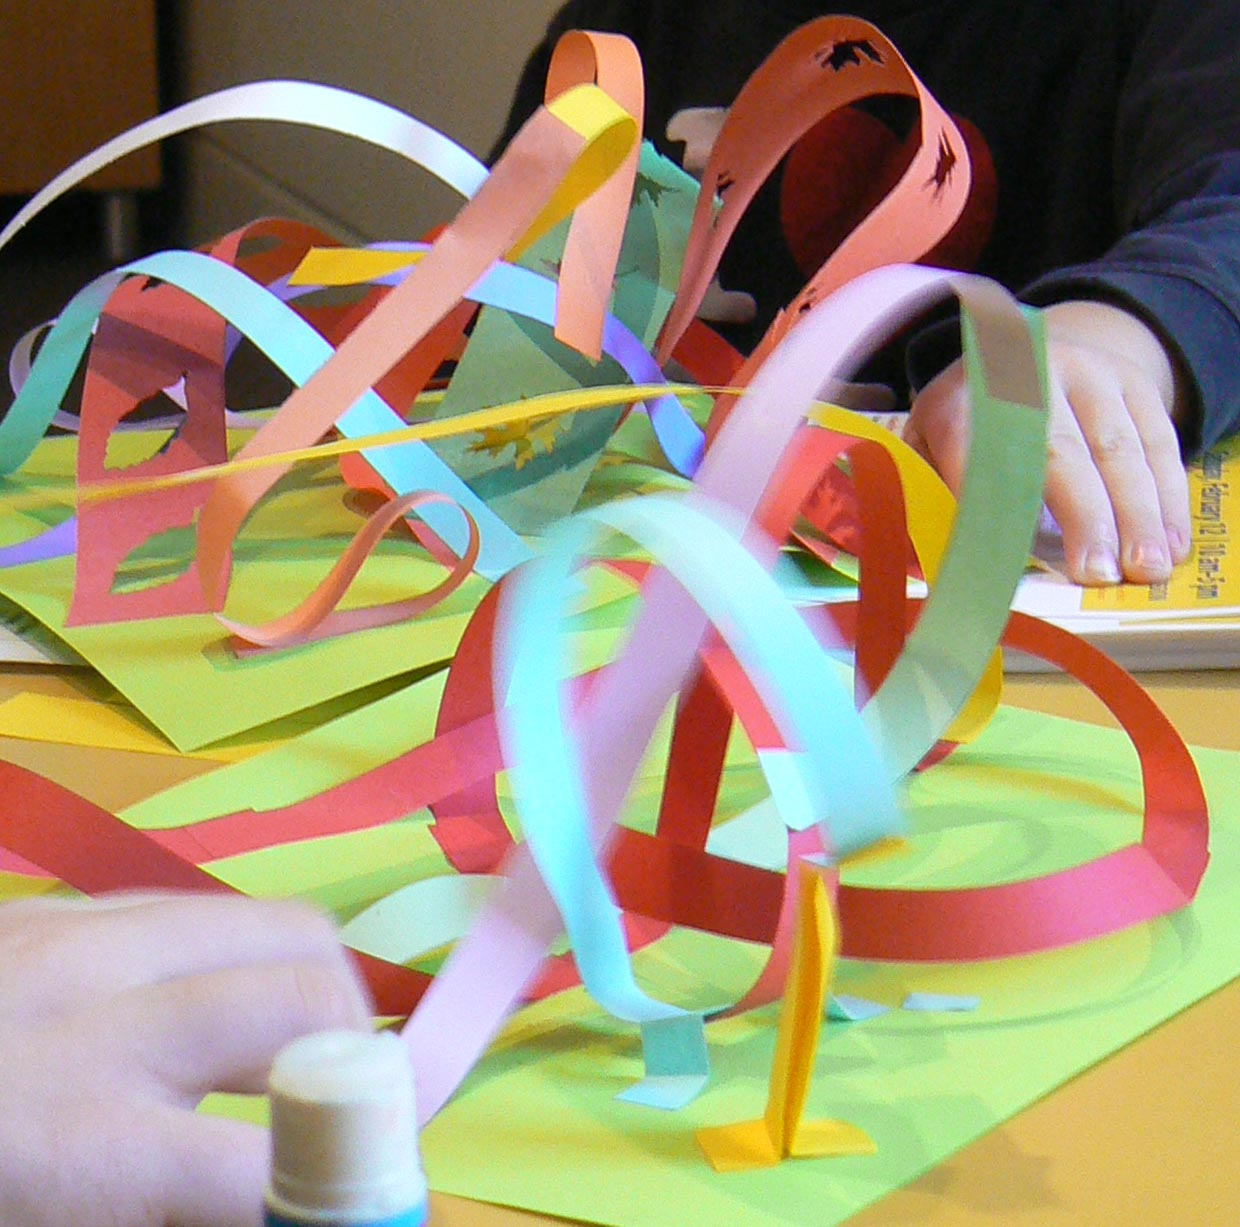 Paper Rollercoasters